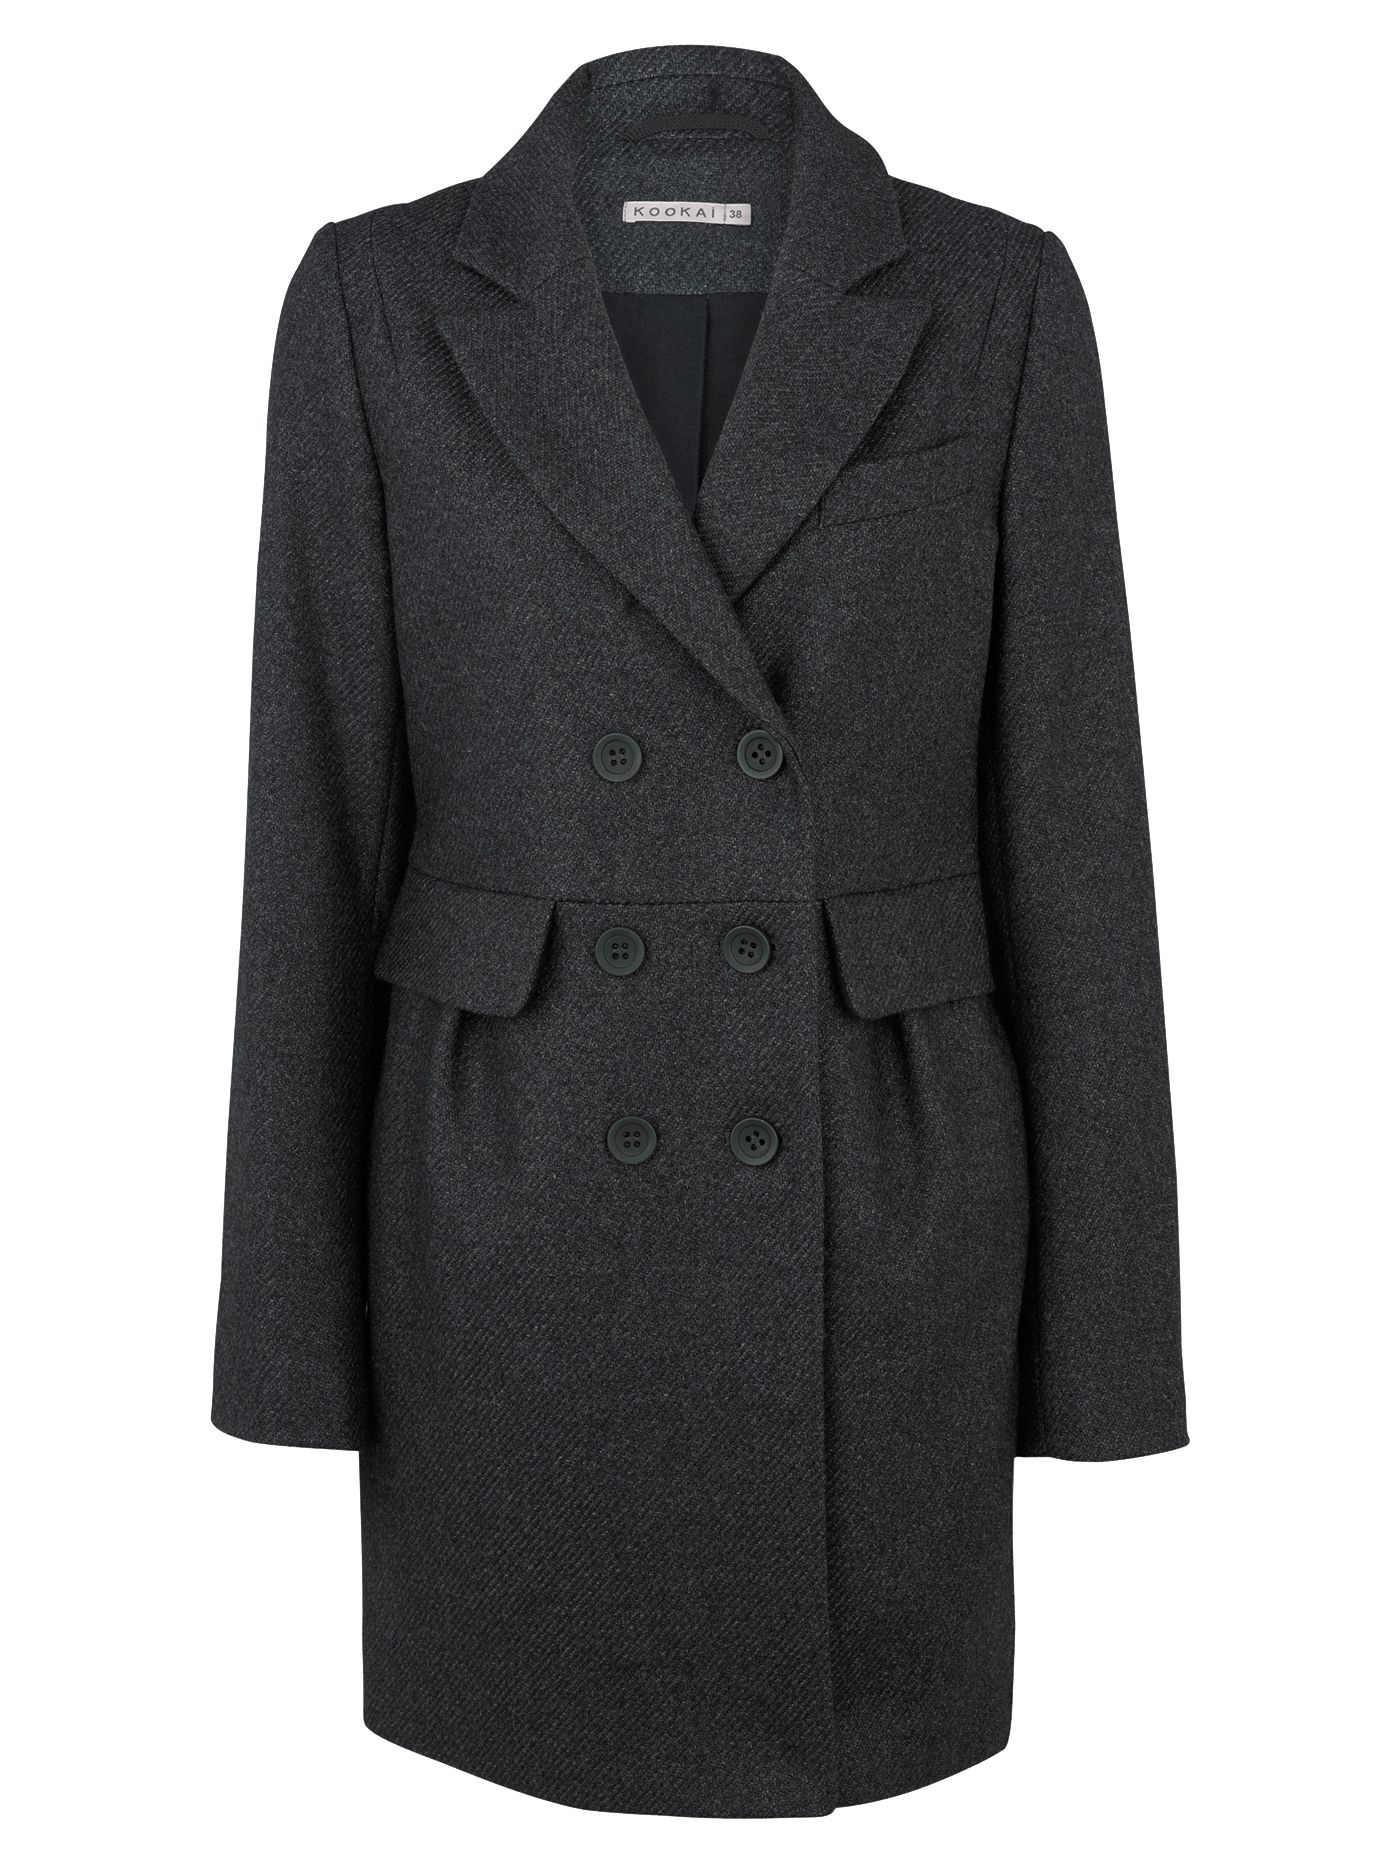 Kookai Double Breasted Wool Coat, Grey at John Lewis